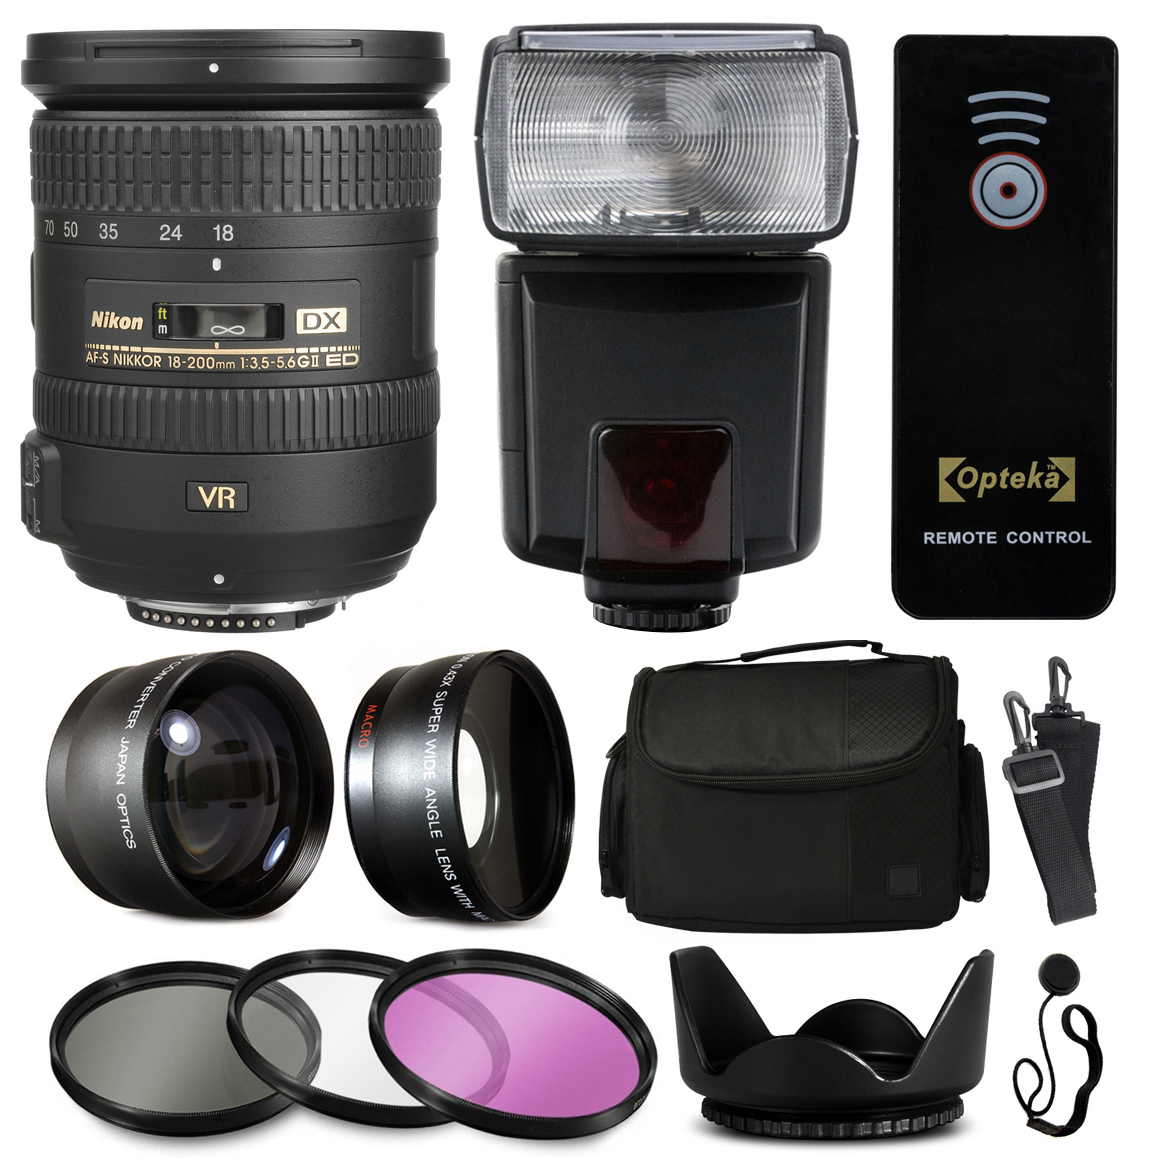 Nikon 18-200mm VR II Lens 2192 + Accessories Bundle with 2.2x & 0.43x Adapters + Flash + Case + Filters for Nikon DF D7200 D7100 D7000 D5500 D5300 D5200 D5100 D5000 D3300 D3200 D3100 D3000 D300S D90